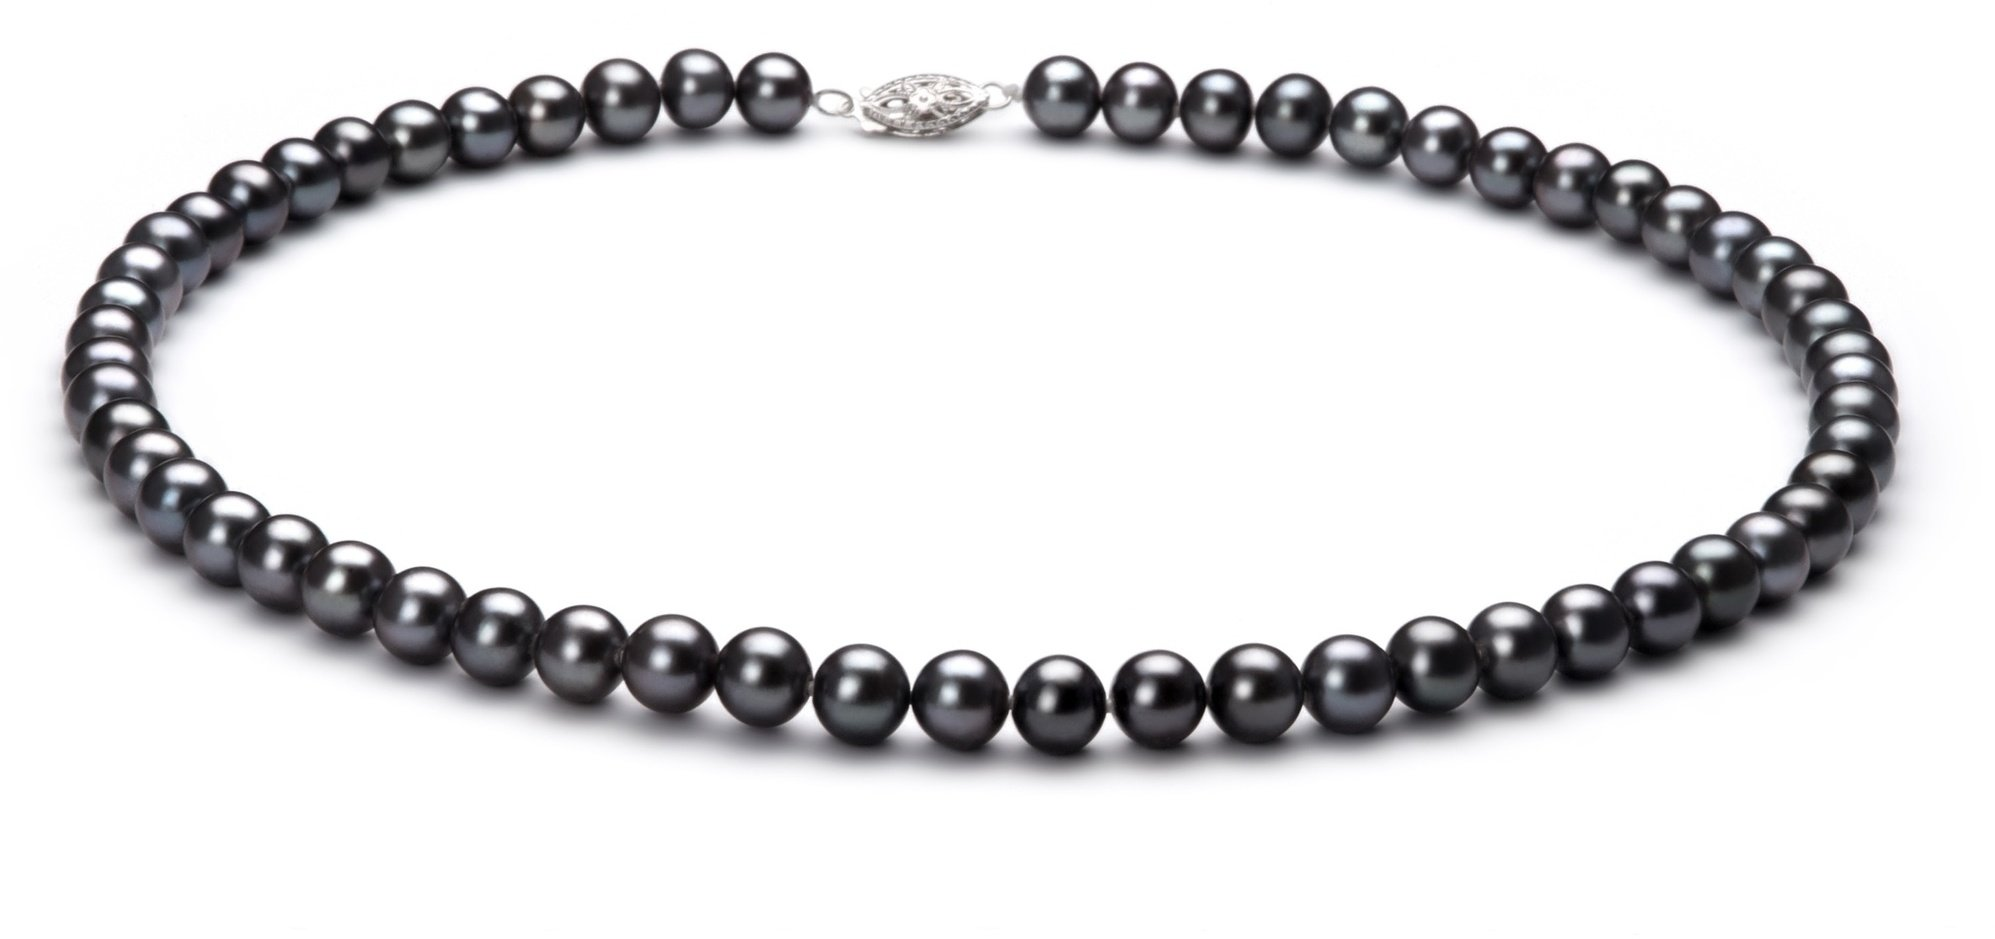 PearlsOnly - Black 6-7mm AA Quality Freshwater 925 Sterling Silver Cultured Pearl Necklace-18 in Princess length